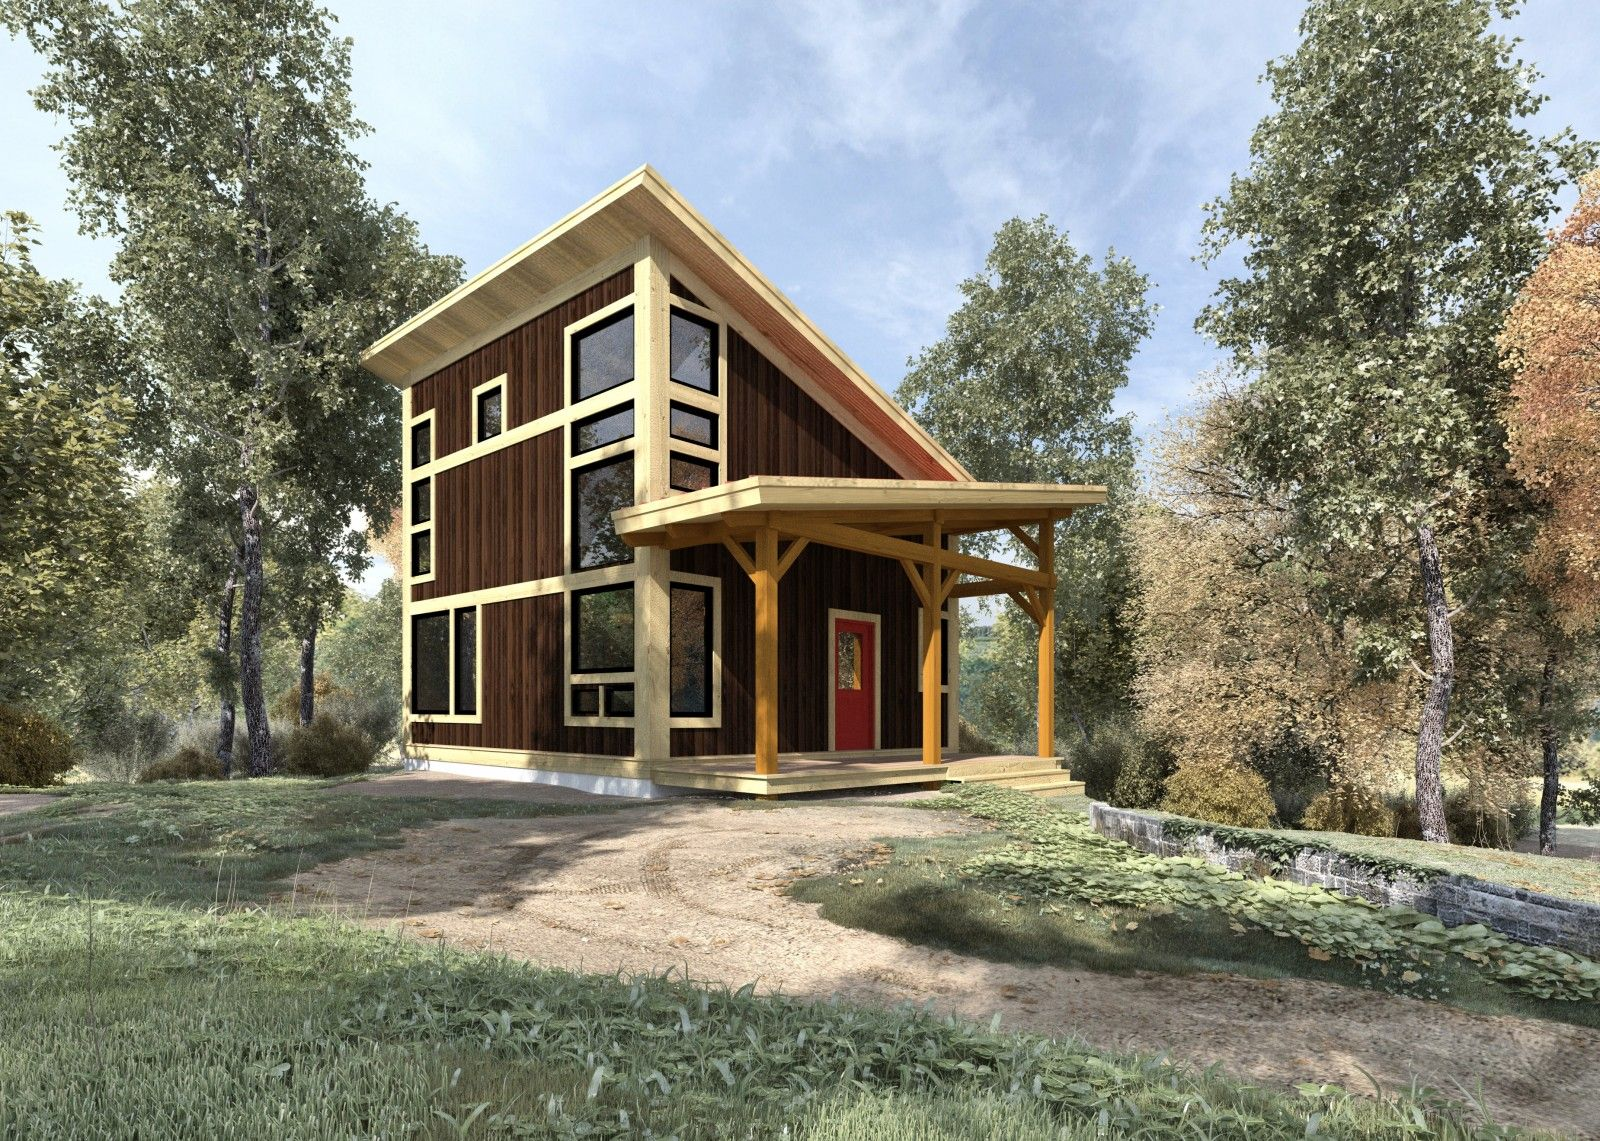 Brookside 844 Sq Ft From The Cabin Series Of Timber Frame Home Designs We